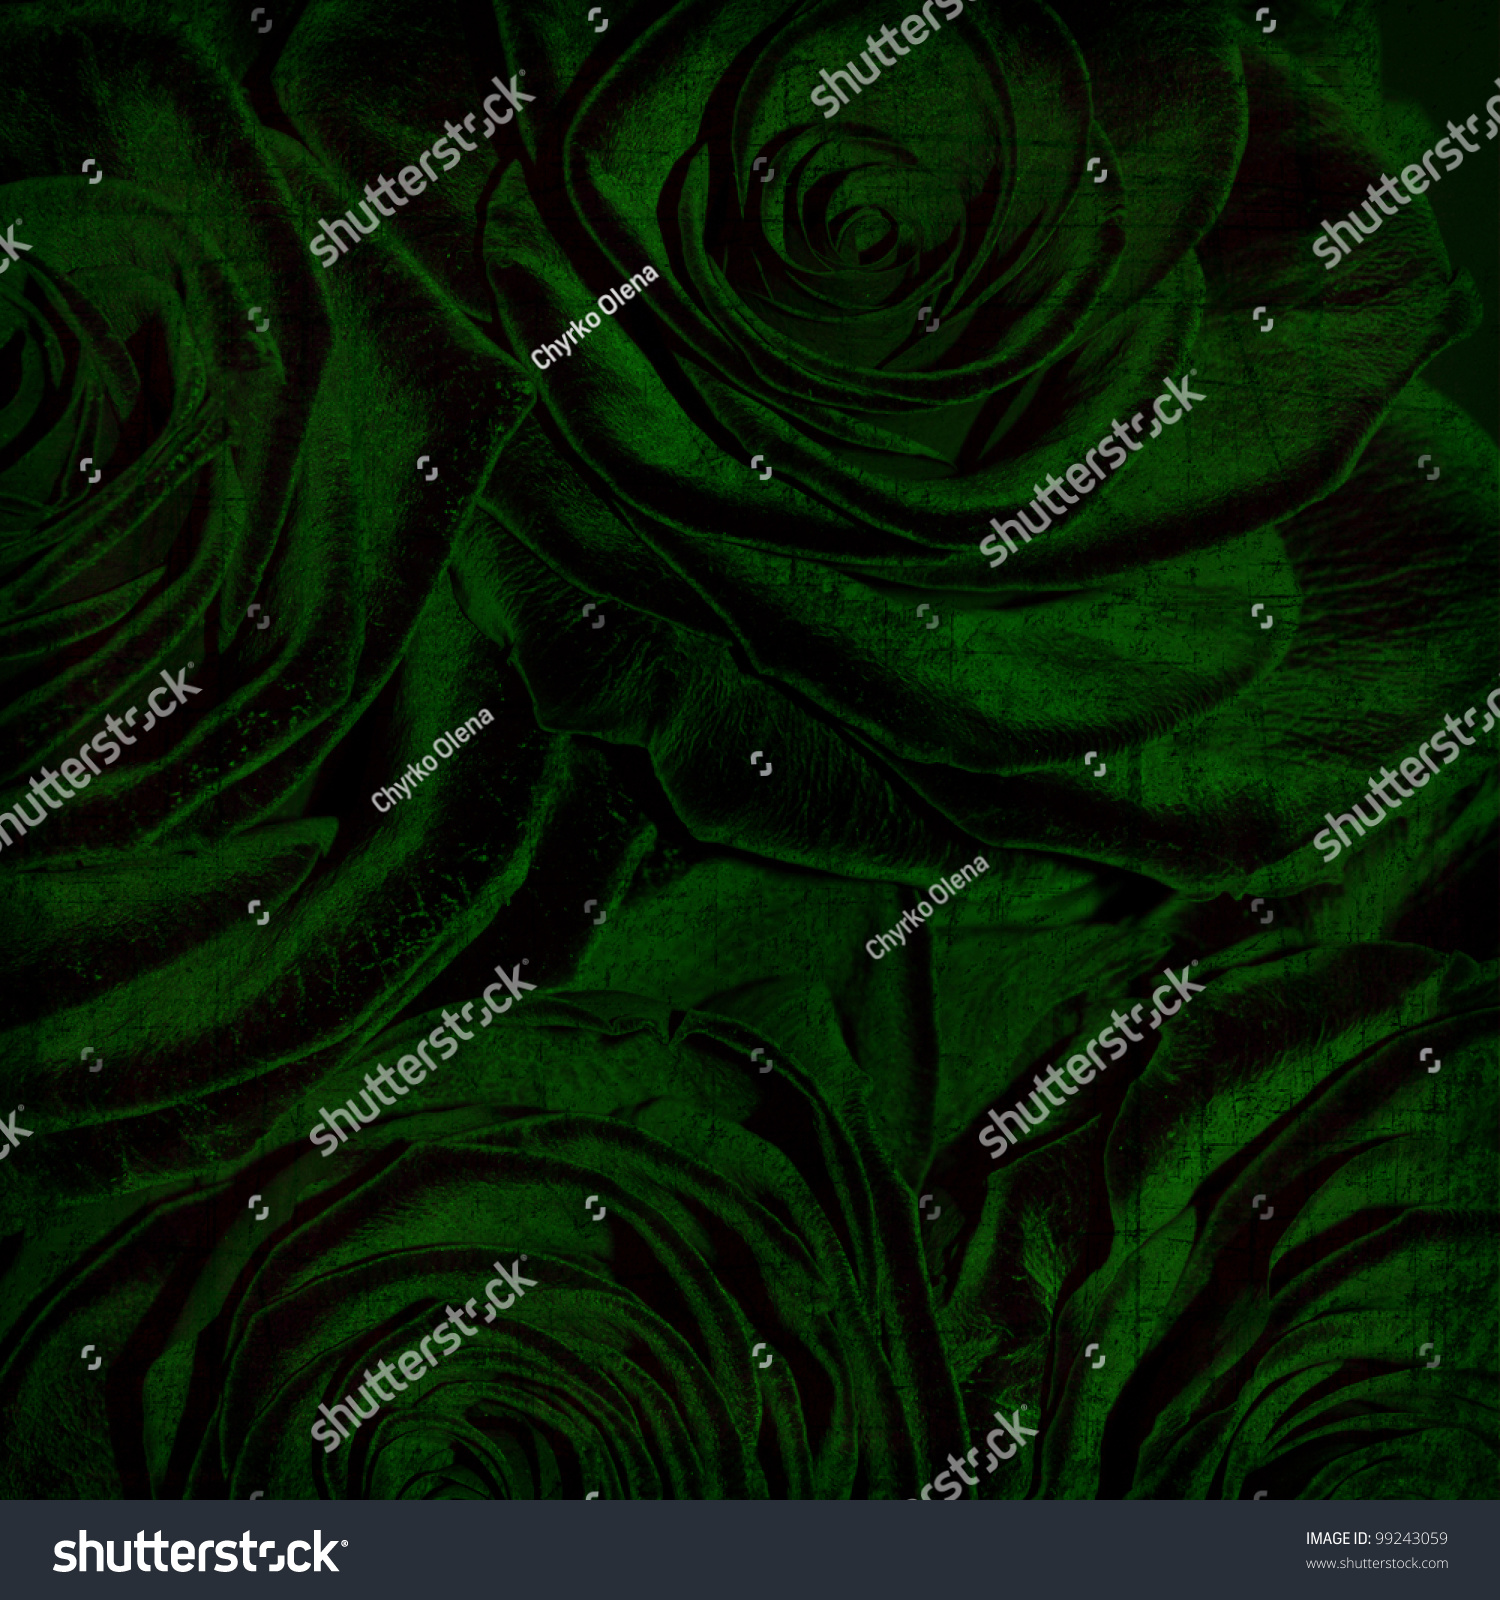 Abstract grunge textured background with green roses for the cover design or photo album pages